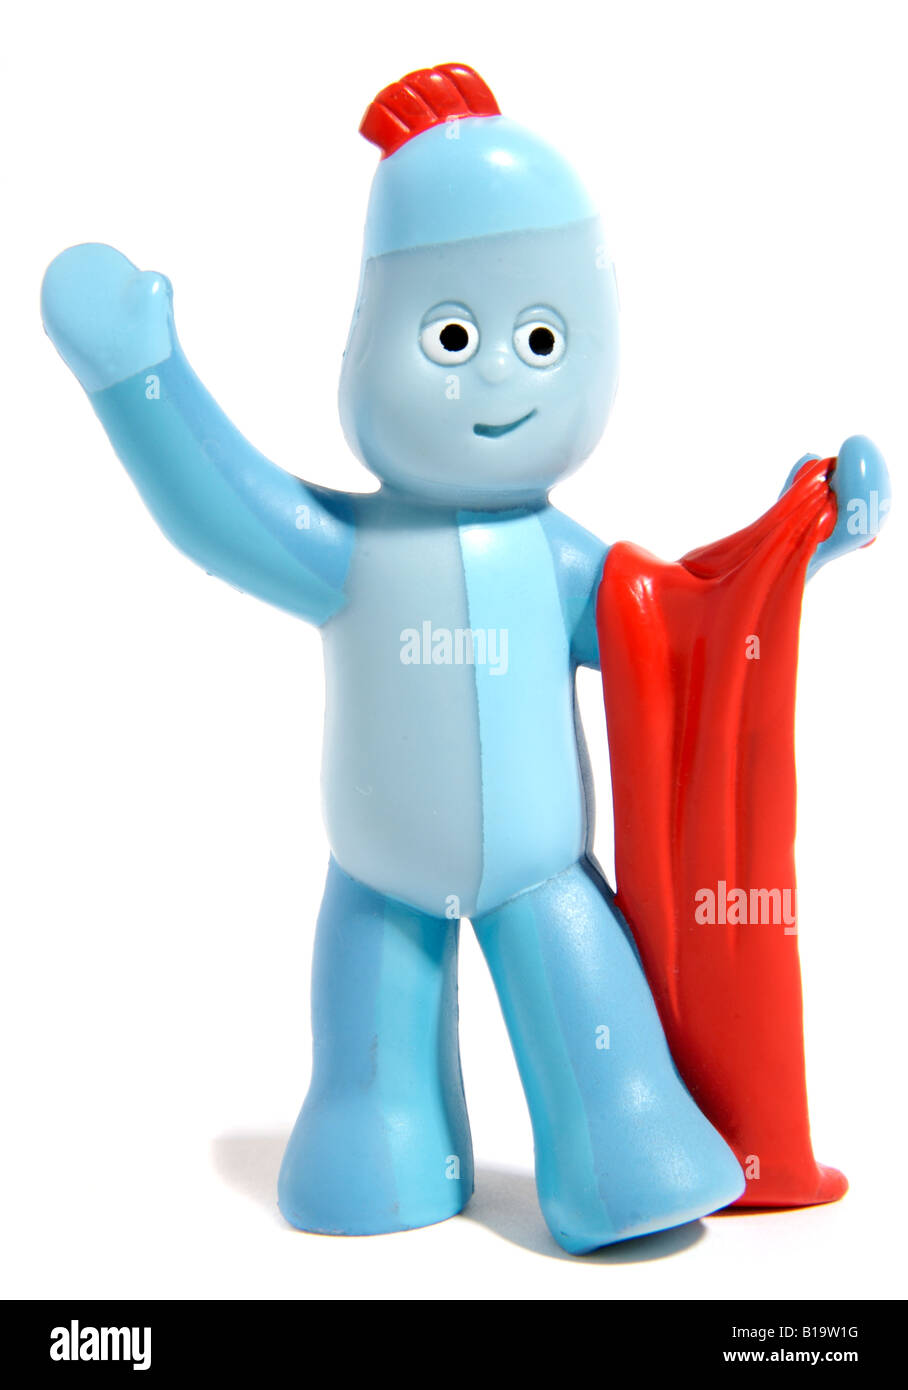 Iggle Piggle toy character from the television program for children, In the Night Garden. - Stock Image